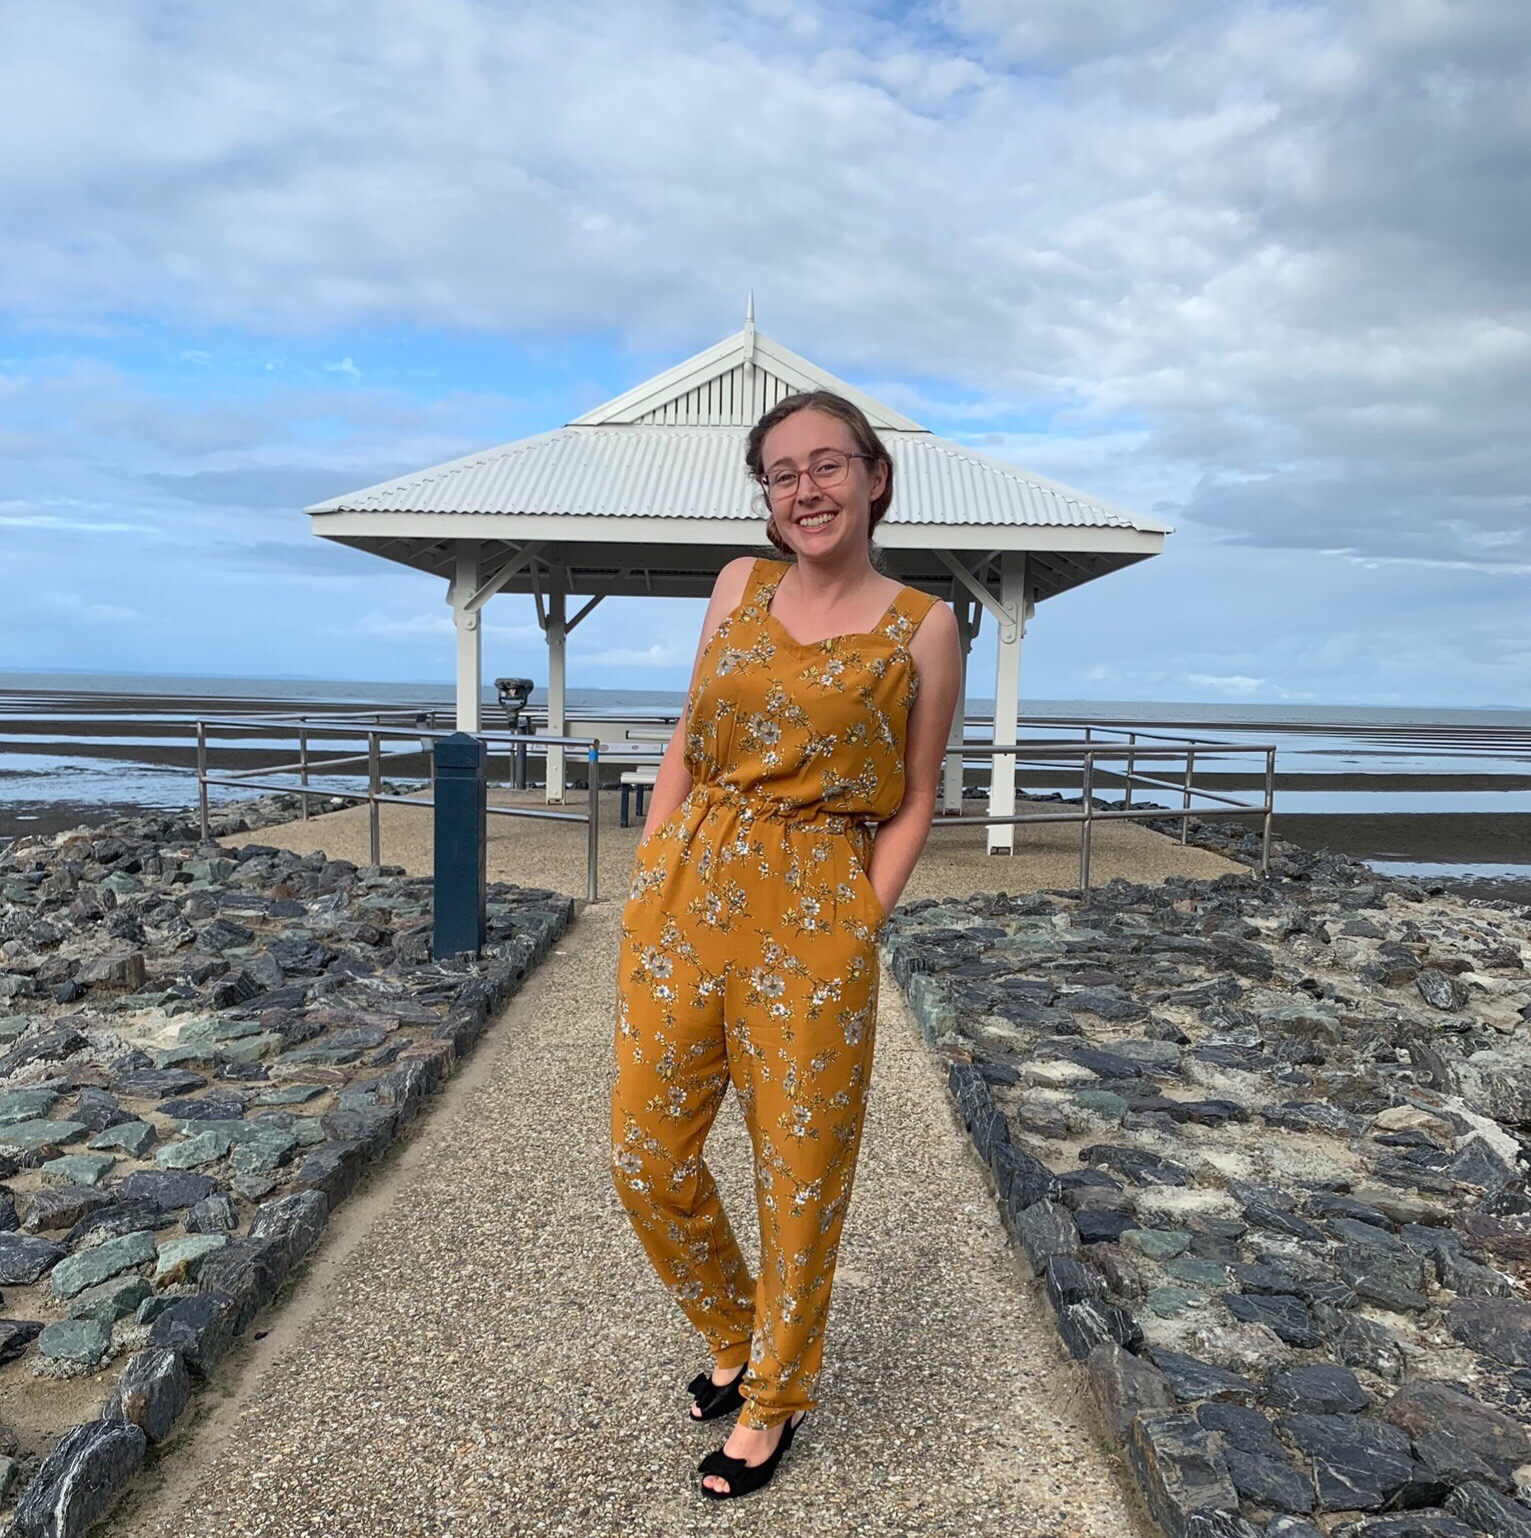 Learn to follow a pattern and make your own clothing. Cait wears a mustard yellow jumpsuit she made herself from following Tilly and the Buttons Marigold Jumpsuit pattern.